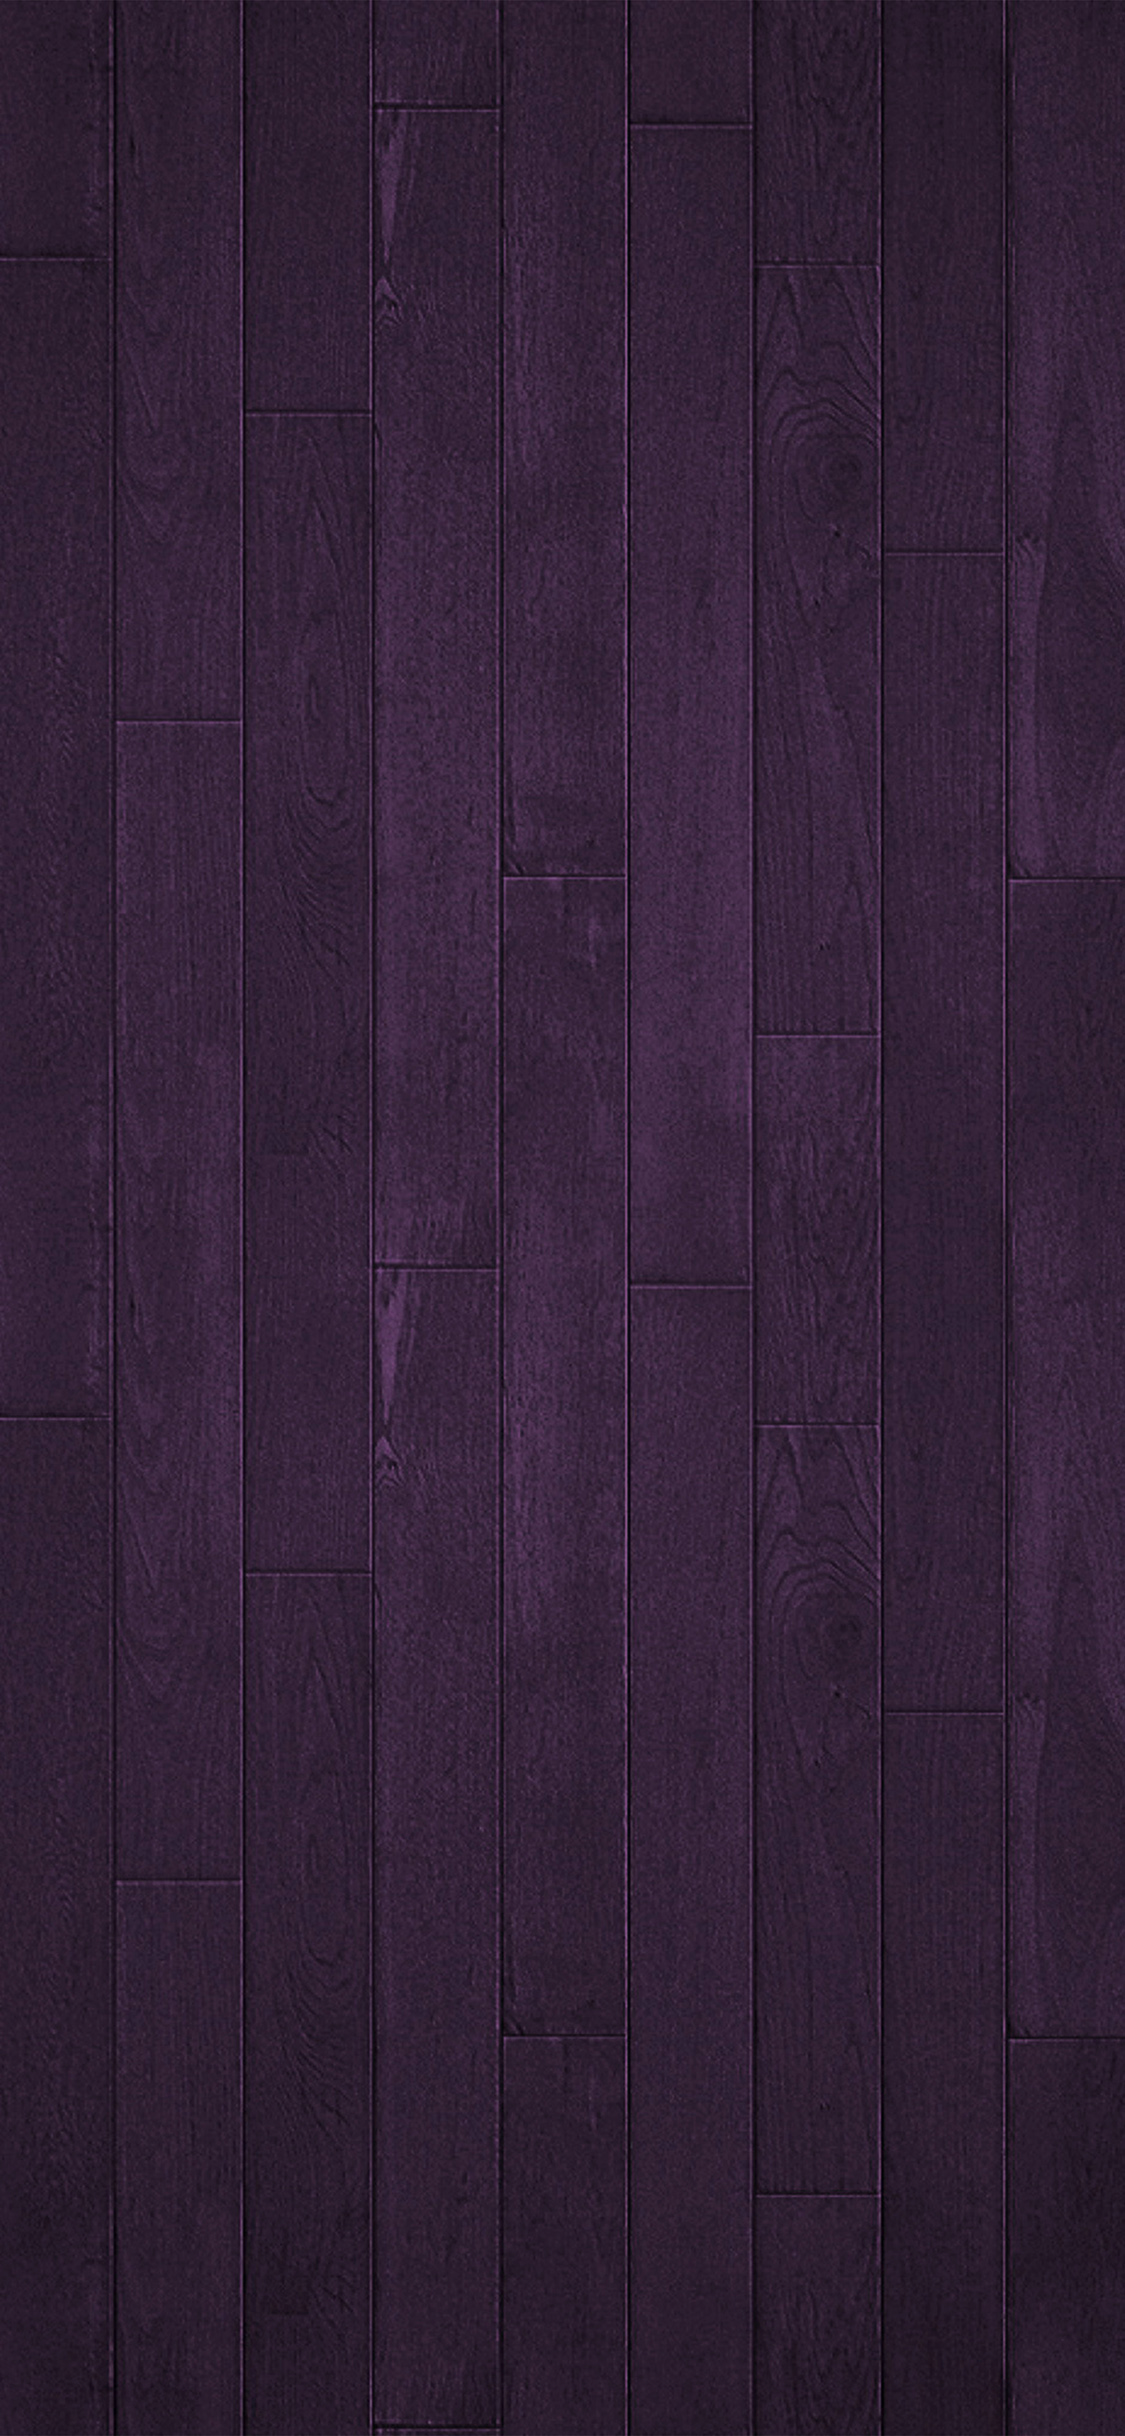 iPhonexpapers.com-Apple-iPhone-wallpaper-vt90-texture-purple-wood-dark-nature-pattern